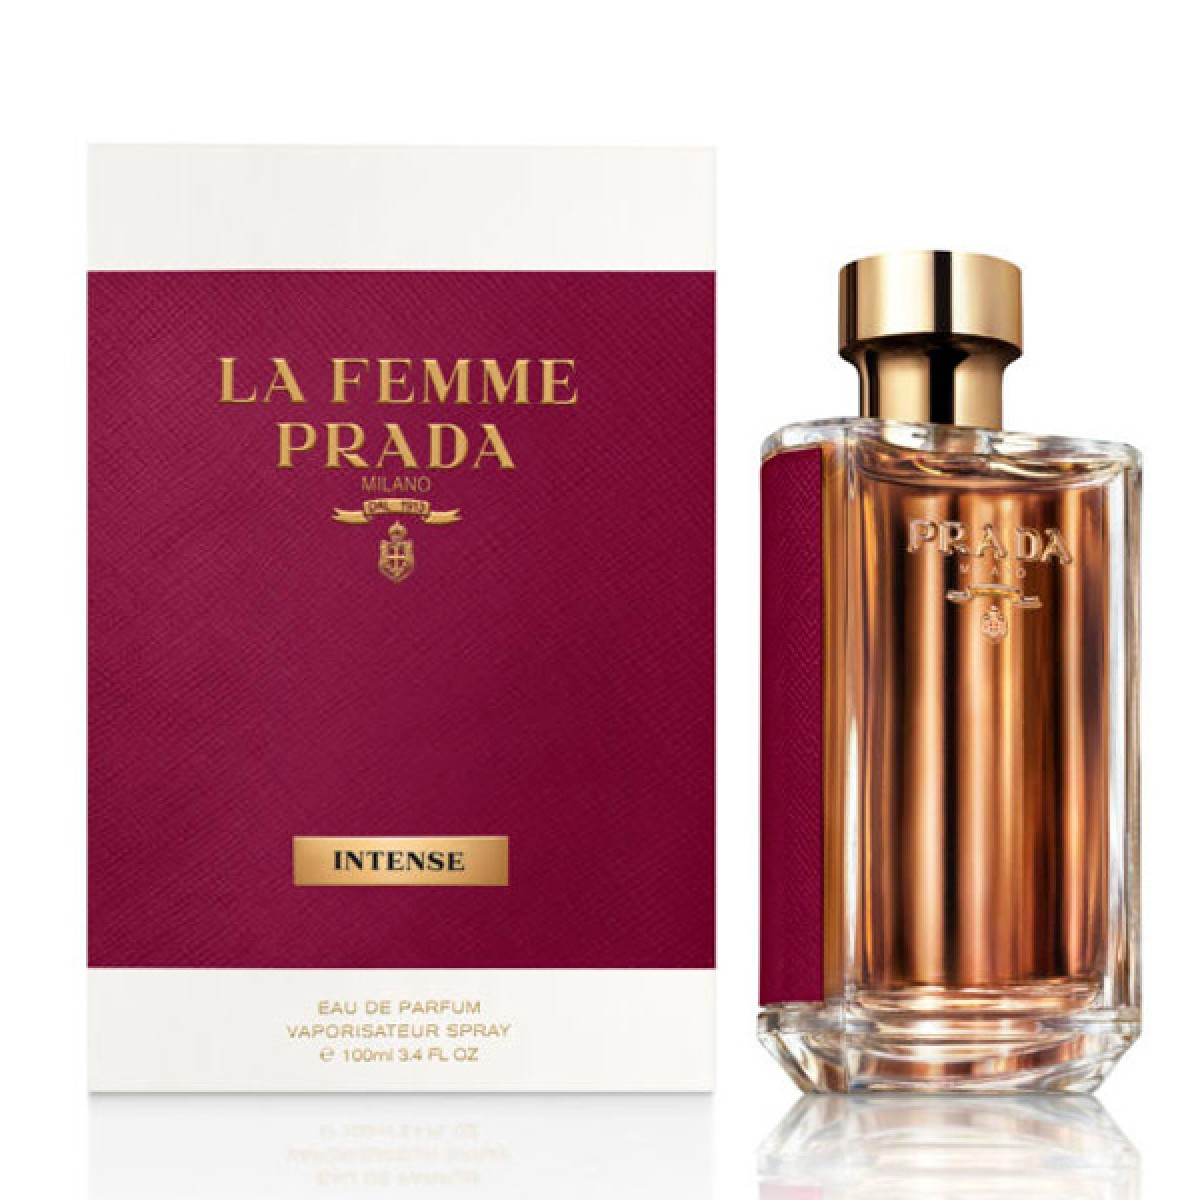 Dameparfume La Femme Prada Intenso Prada EDP - Kapacitet: 100 ml